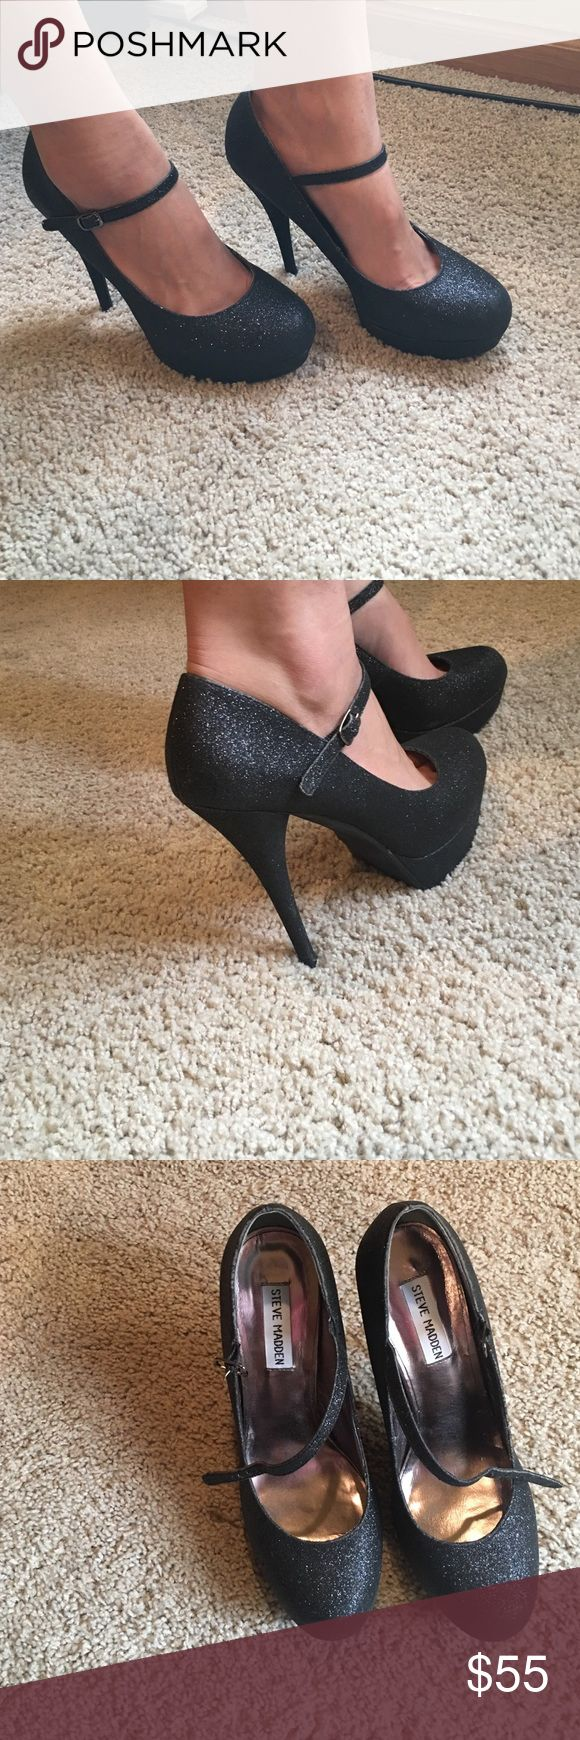 Steve Madden Black Glitter High heels Steve Madden 5in beautiful glitter high heels! Only used once with strap across the top foot! Fits to size! Steve Madden Shoes Heels